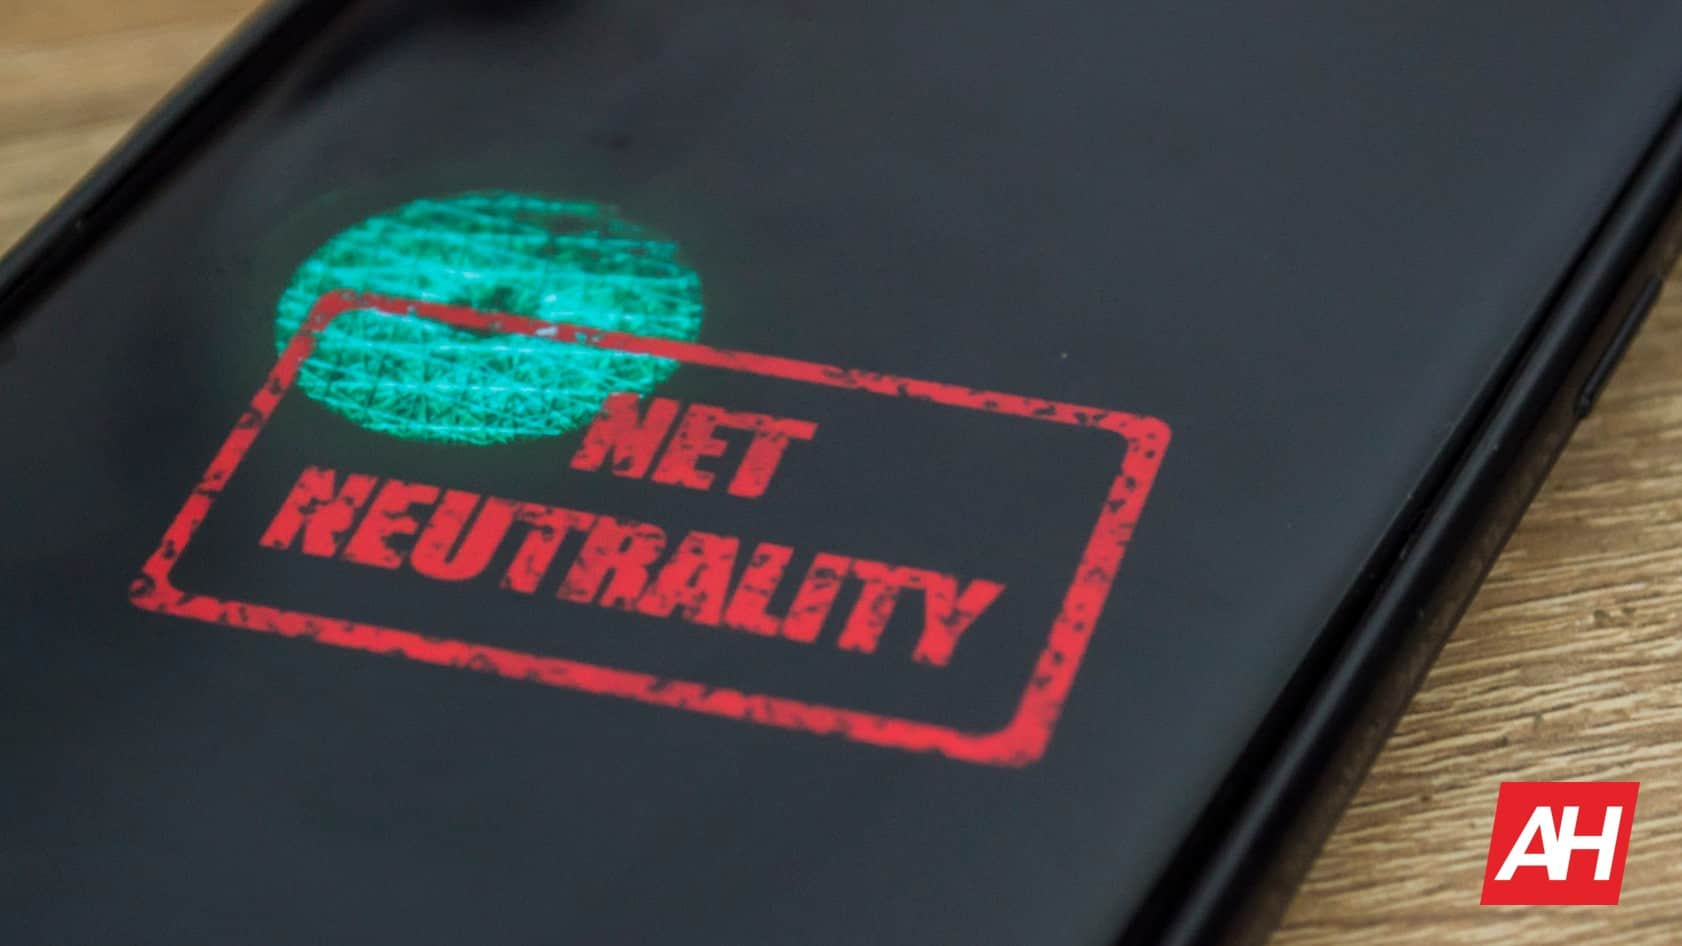 Net Neutrality August 31 2018 AH Illustration new AH